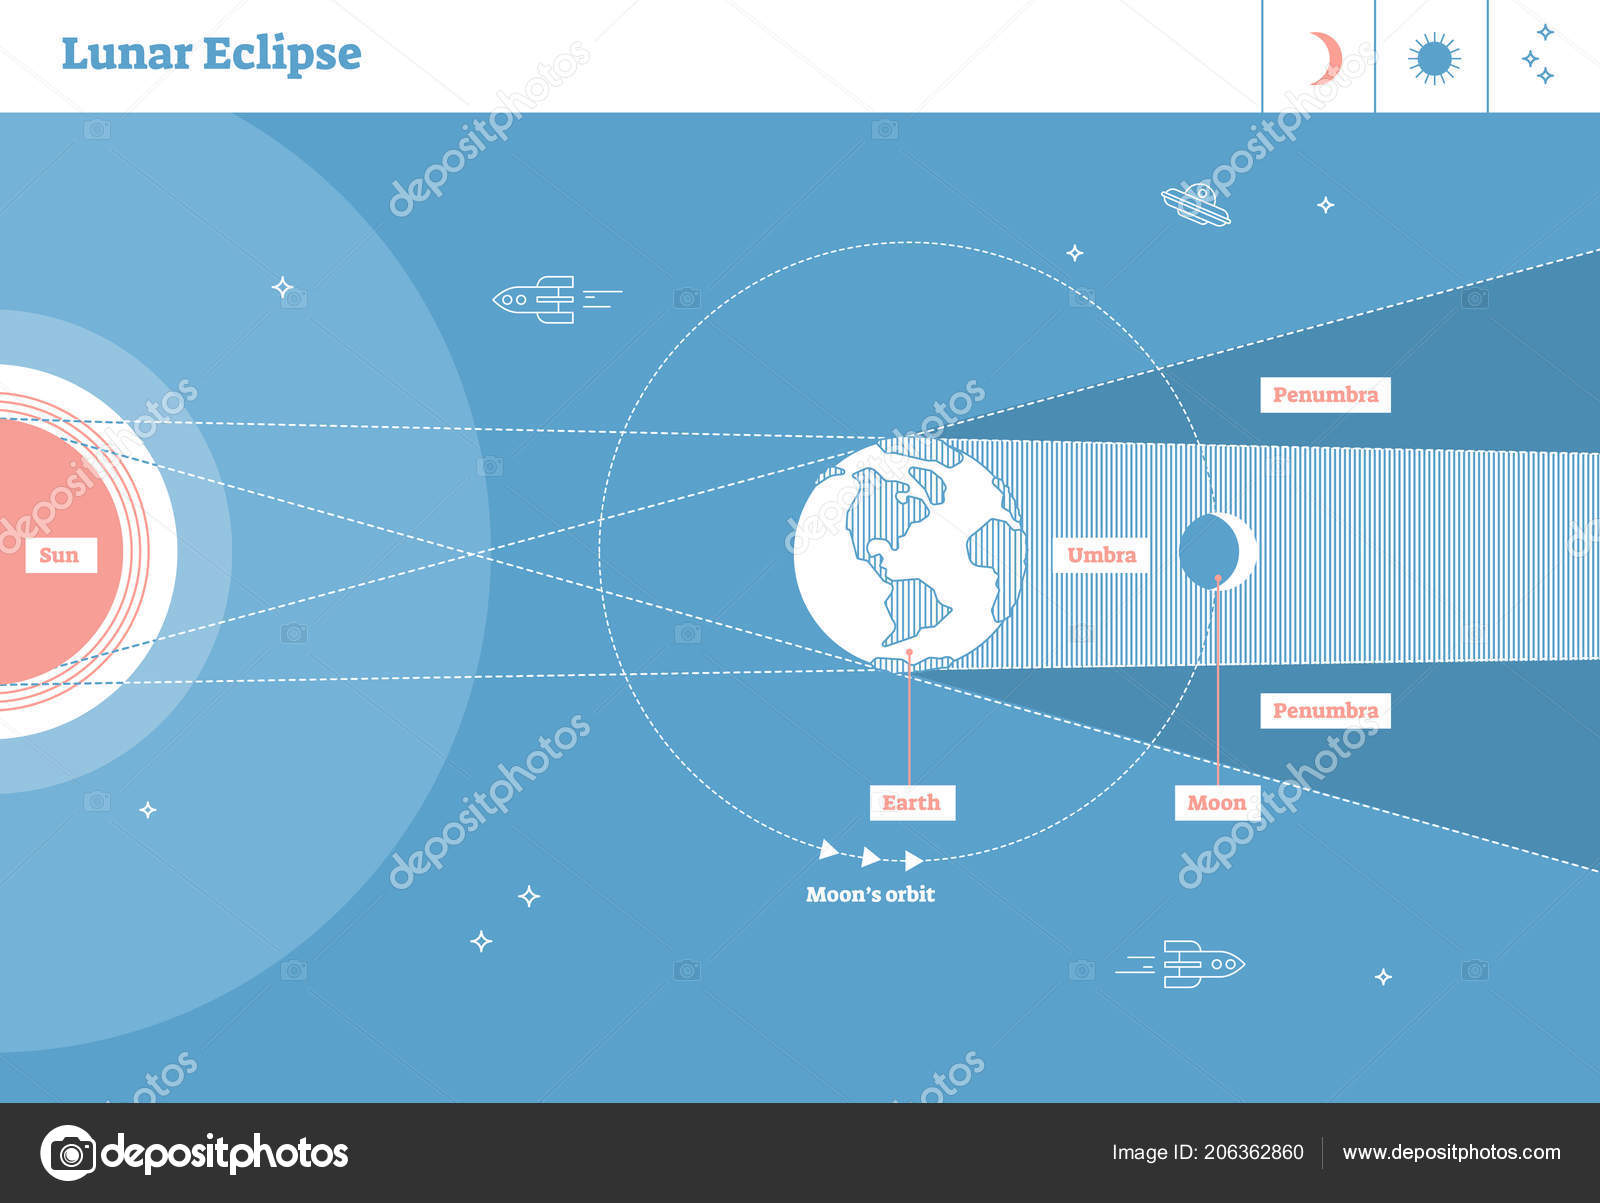 depositphotos_206362860 stock illustration lunar eclipse labeled vector illustration lunar eclipse labeled vector illustration diagram,scientific